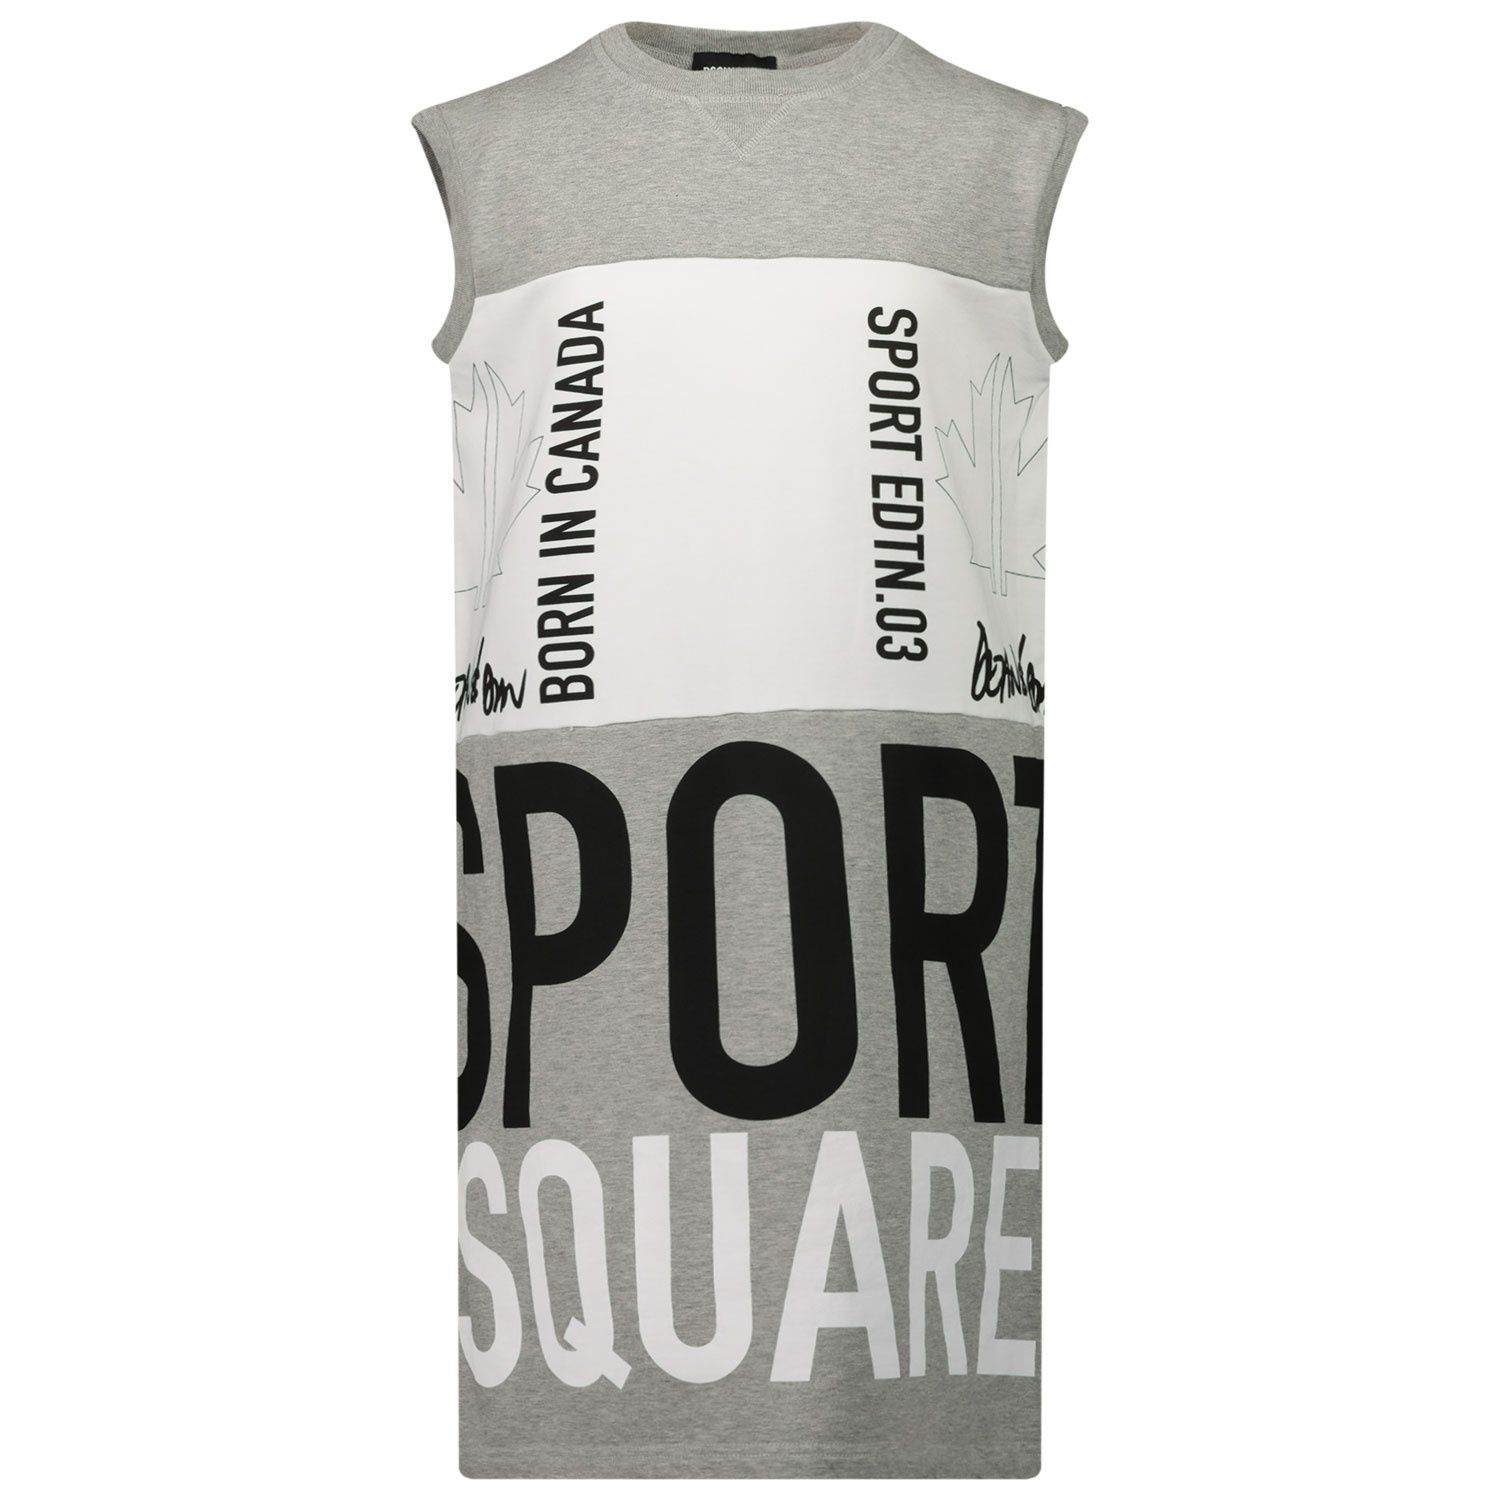 Picture of Dsquared2 DQ0025 kids dress grey